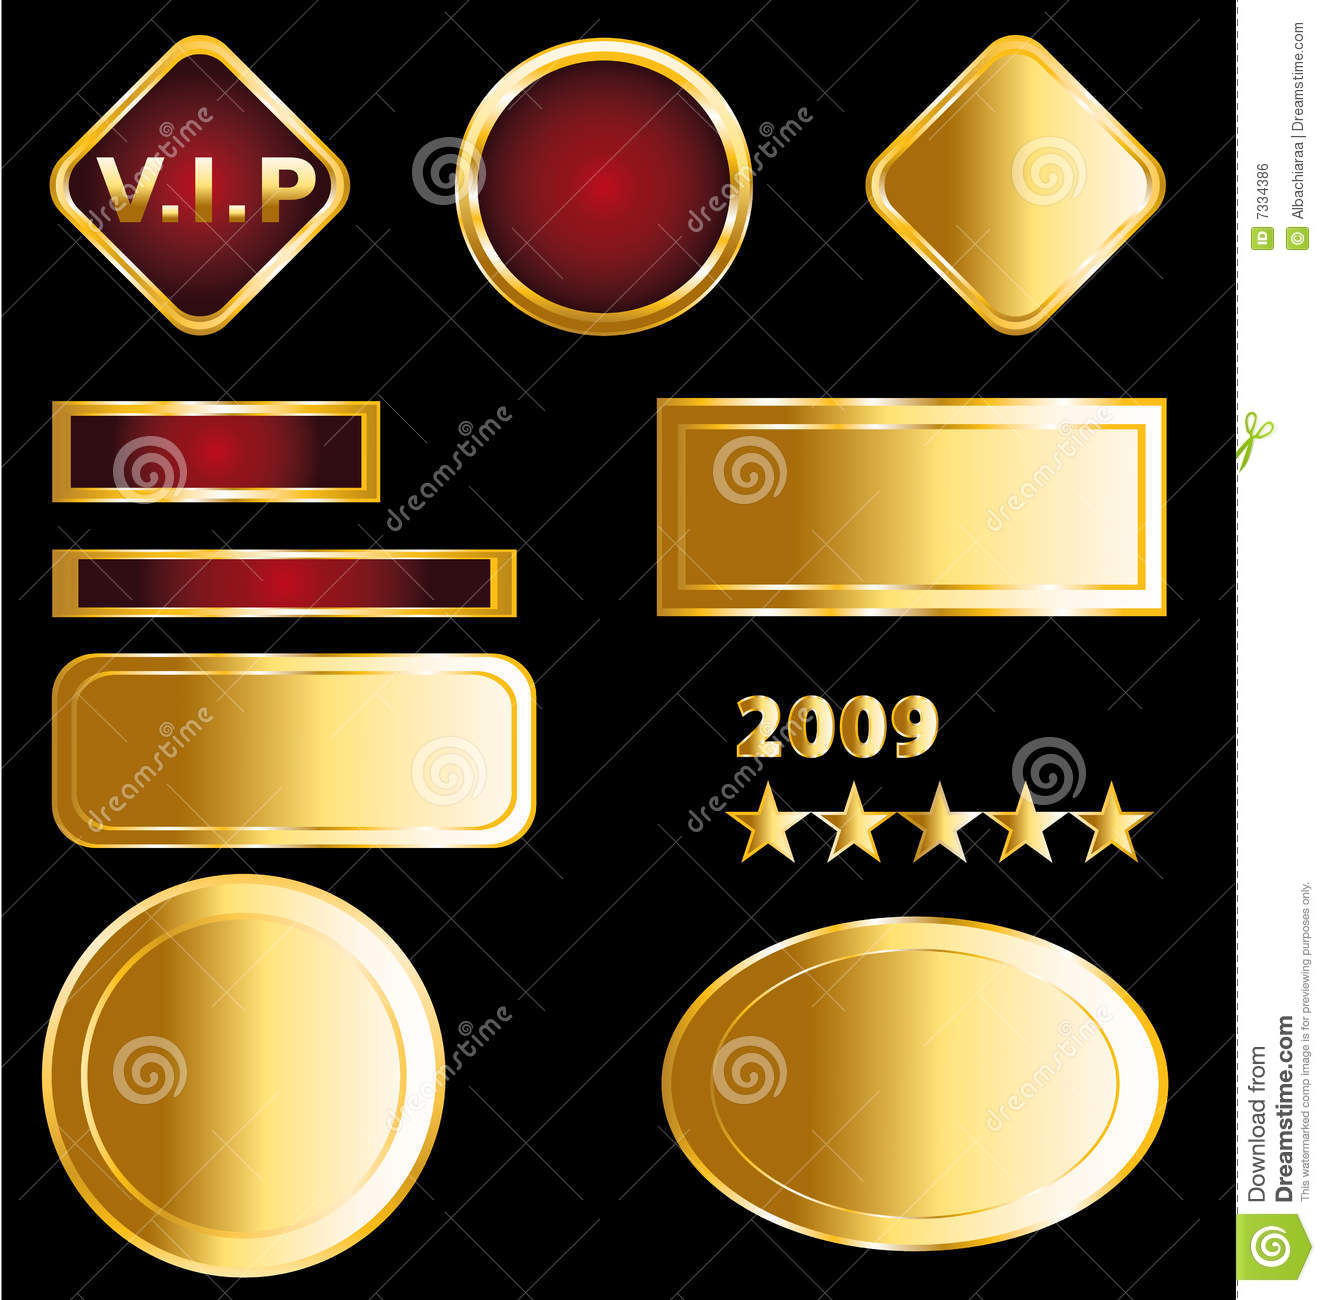 Golden badges and medals